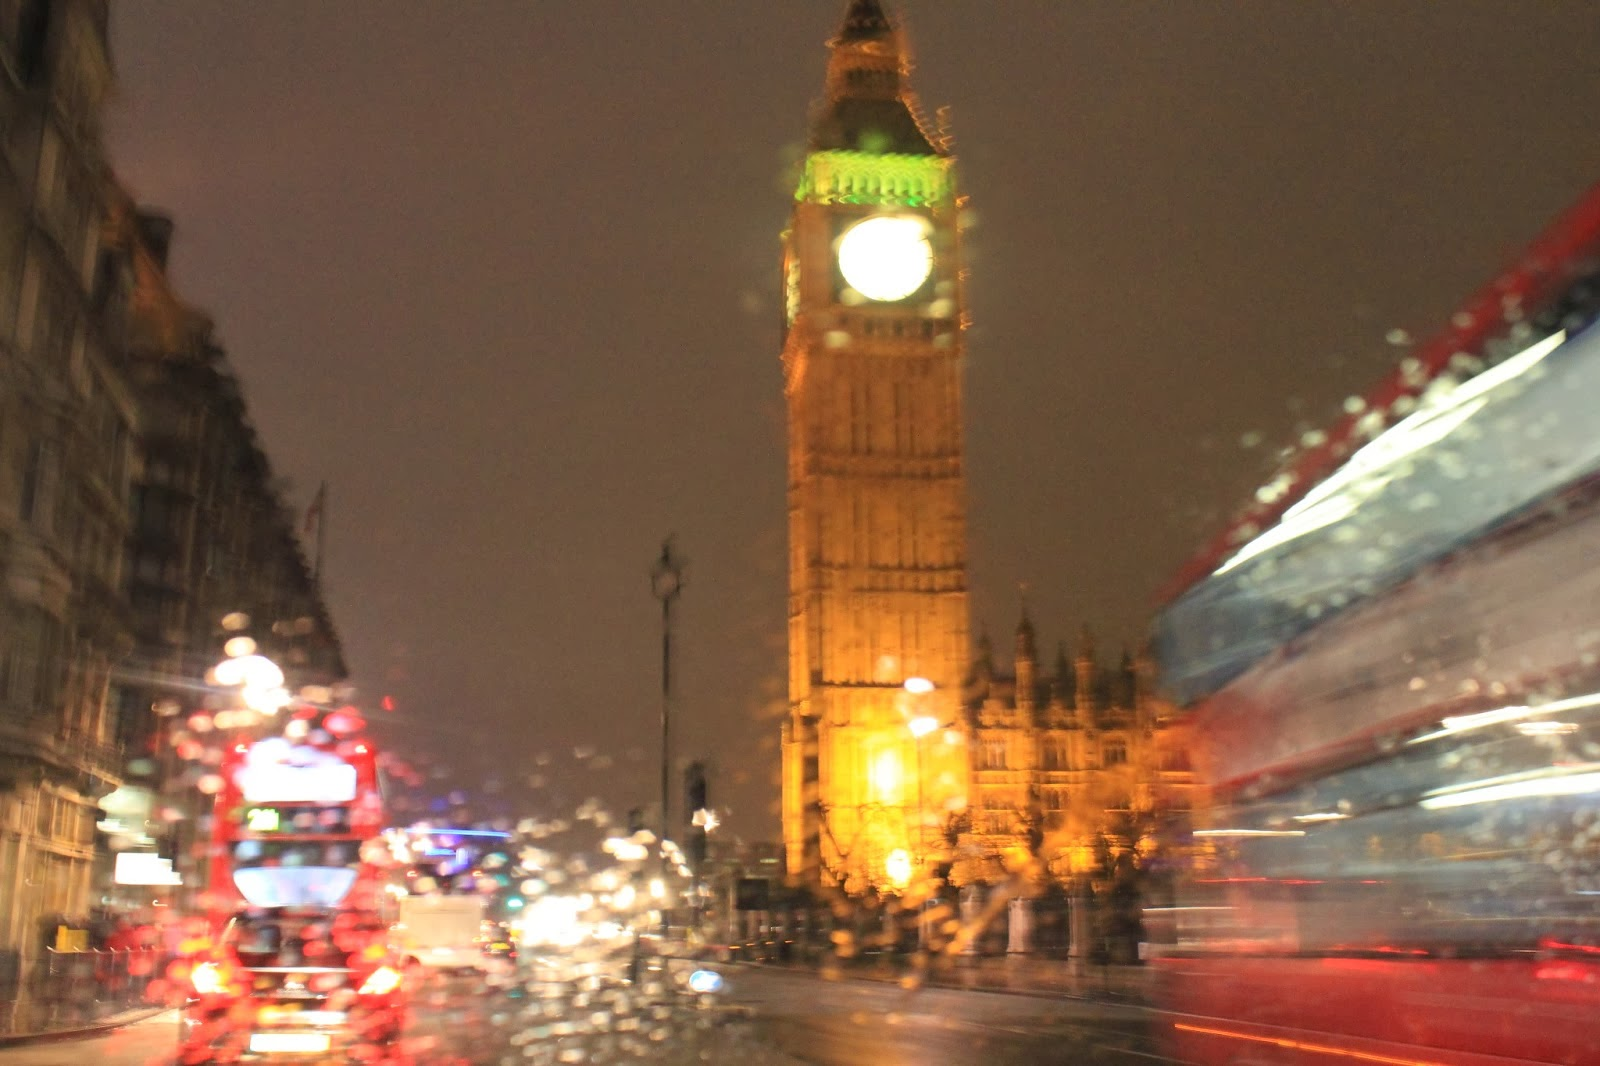 Big Ben in the rain